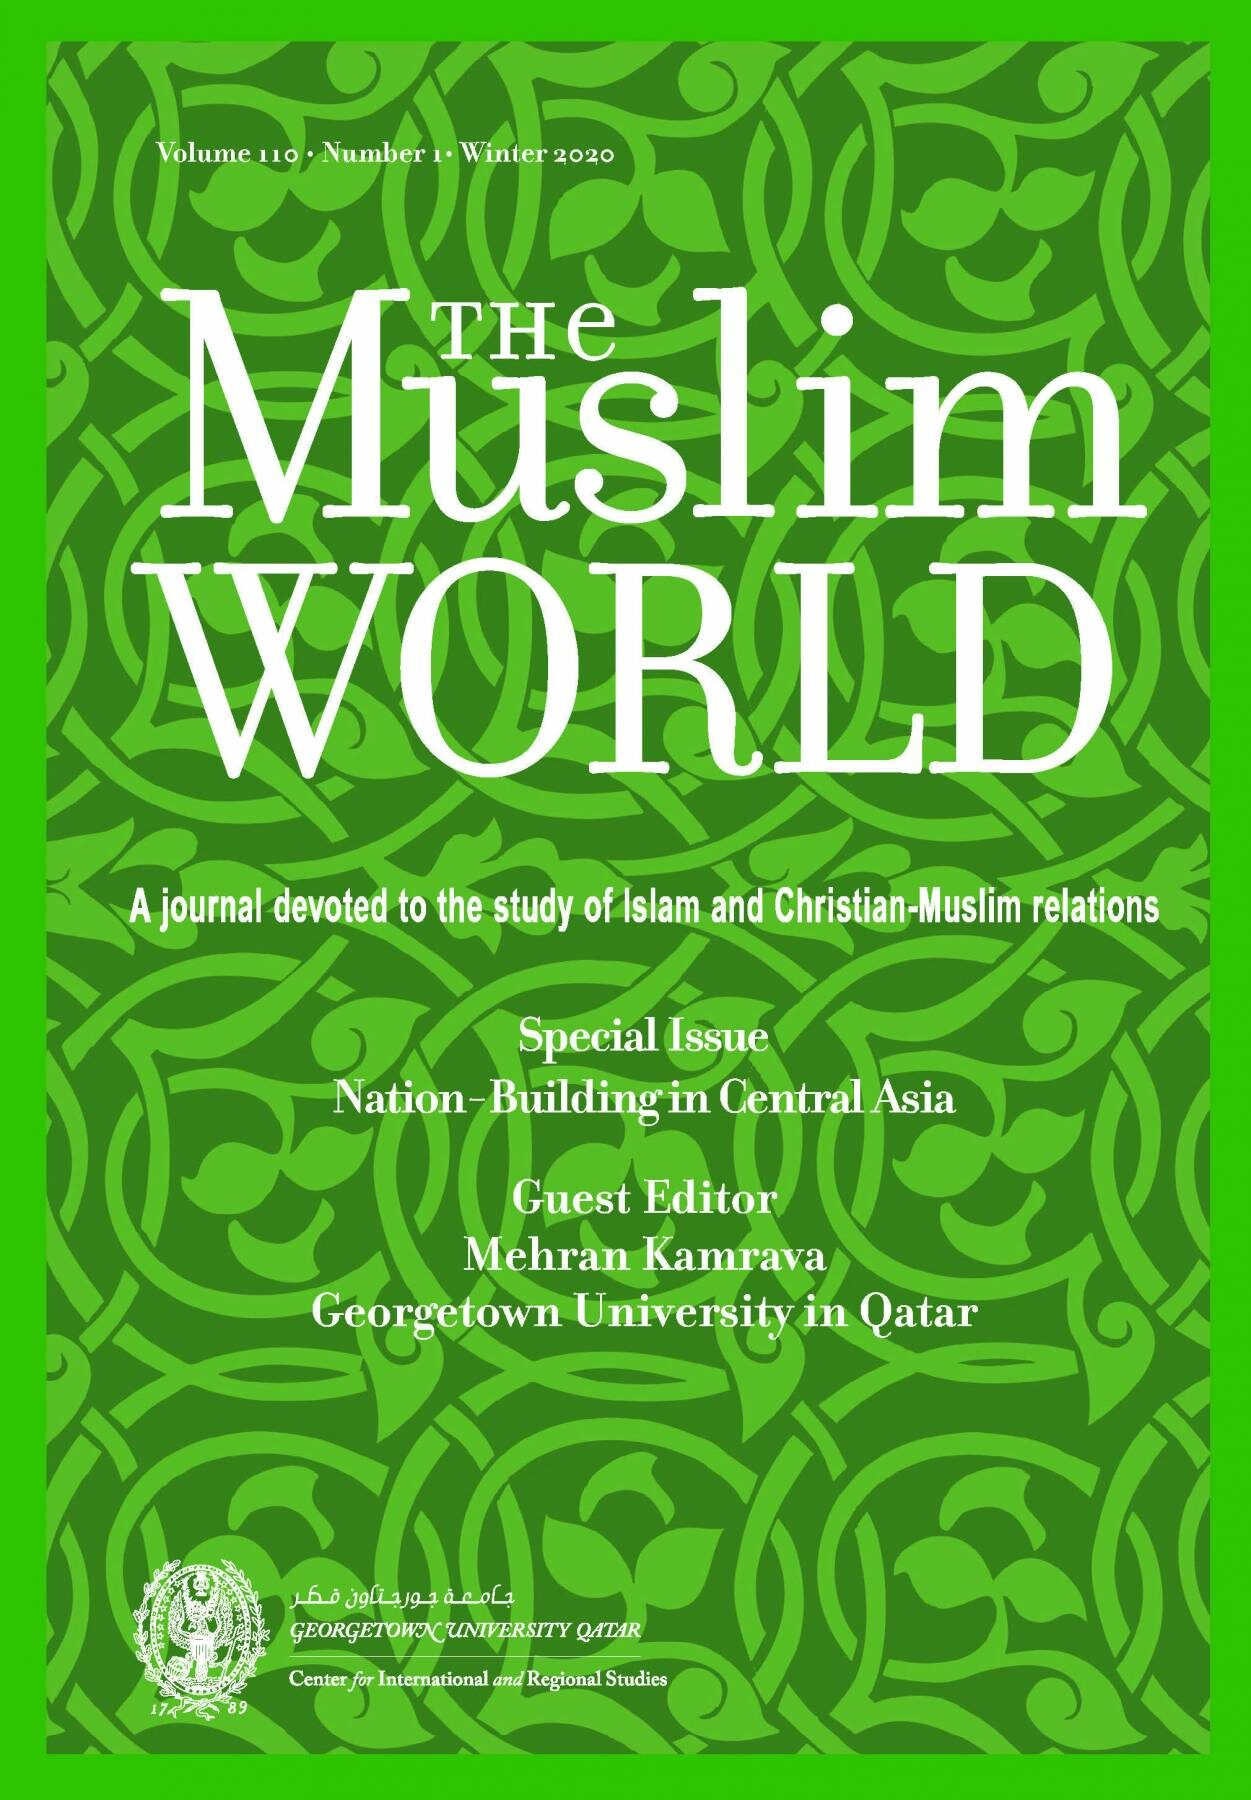 The Muslim World: Nation-Building in Central Asia